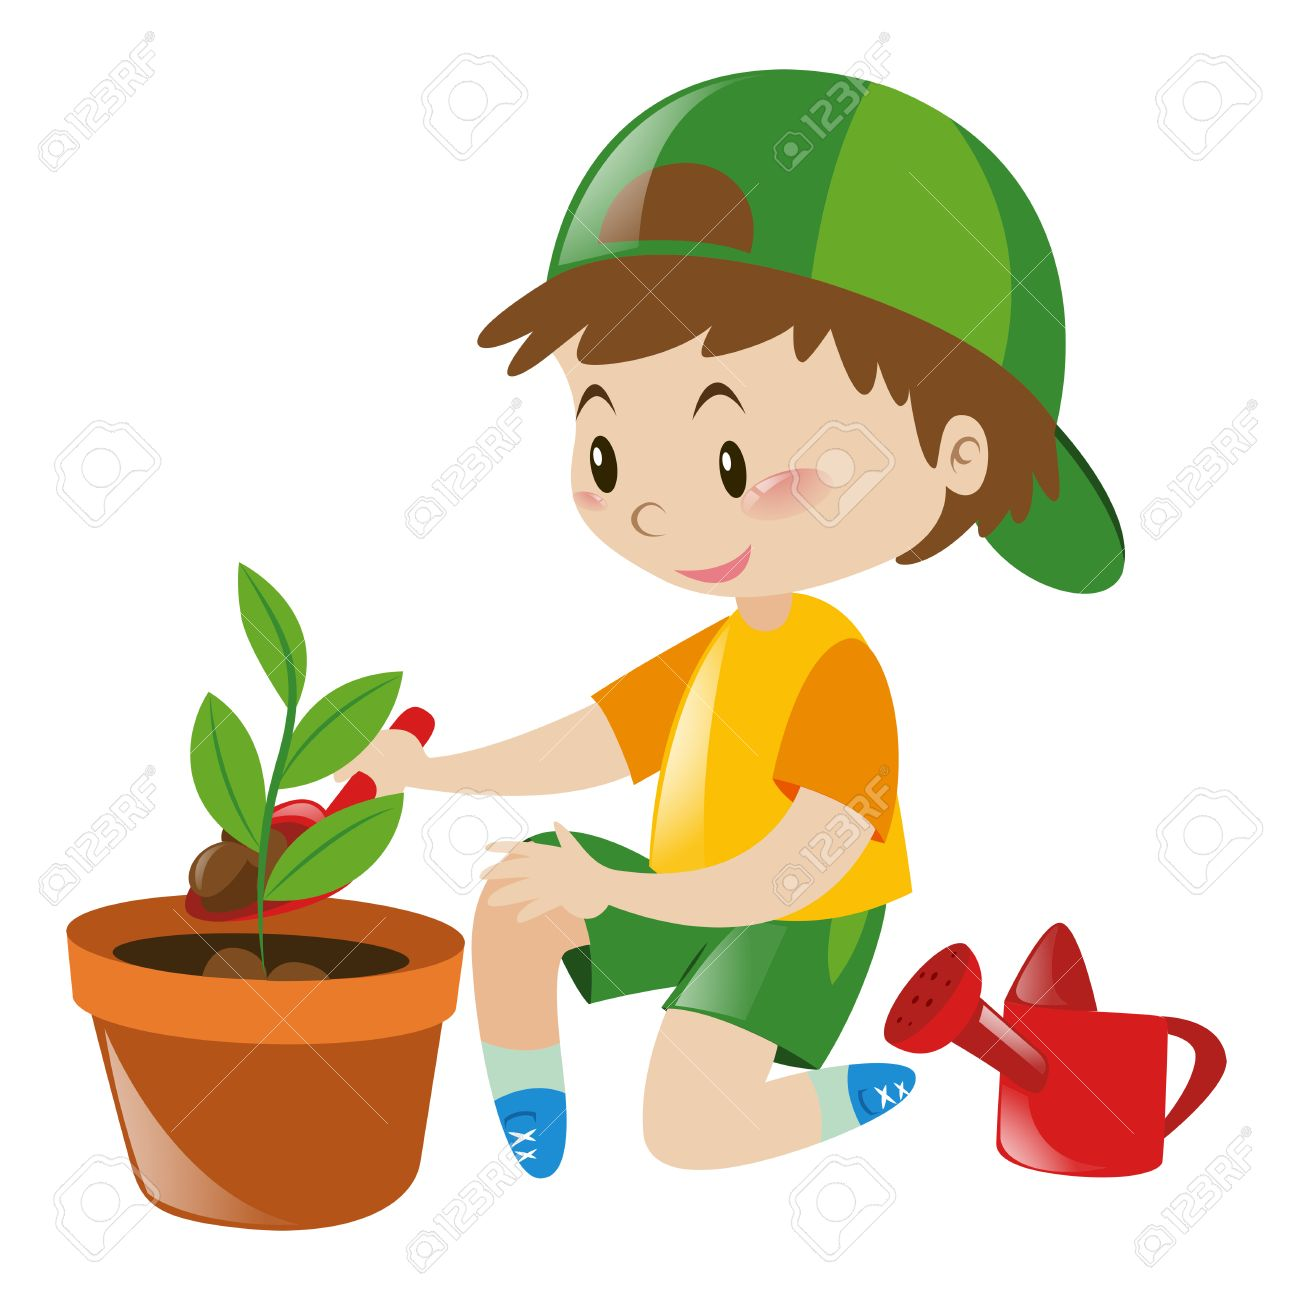 boy planting tree in clay pot illustration royalty free cliparts rh 123rf com plant clipart black and white planing clipart